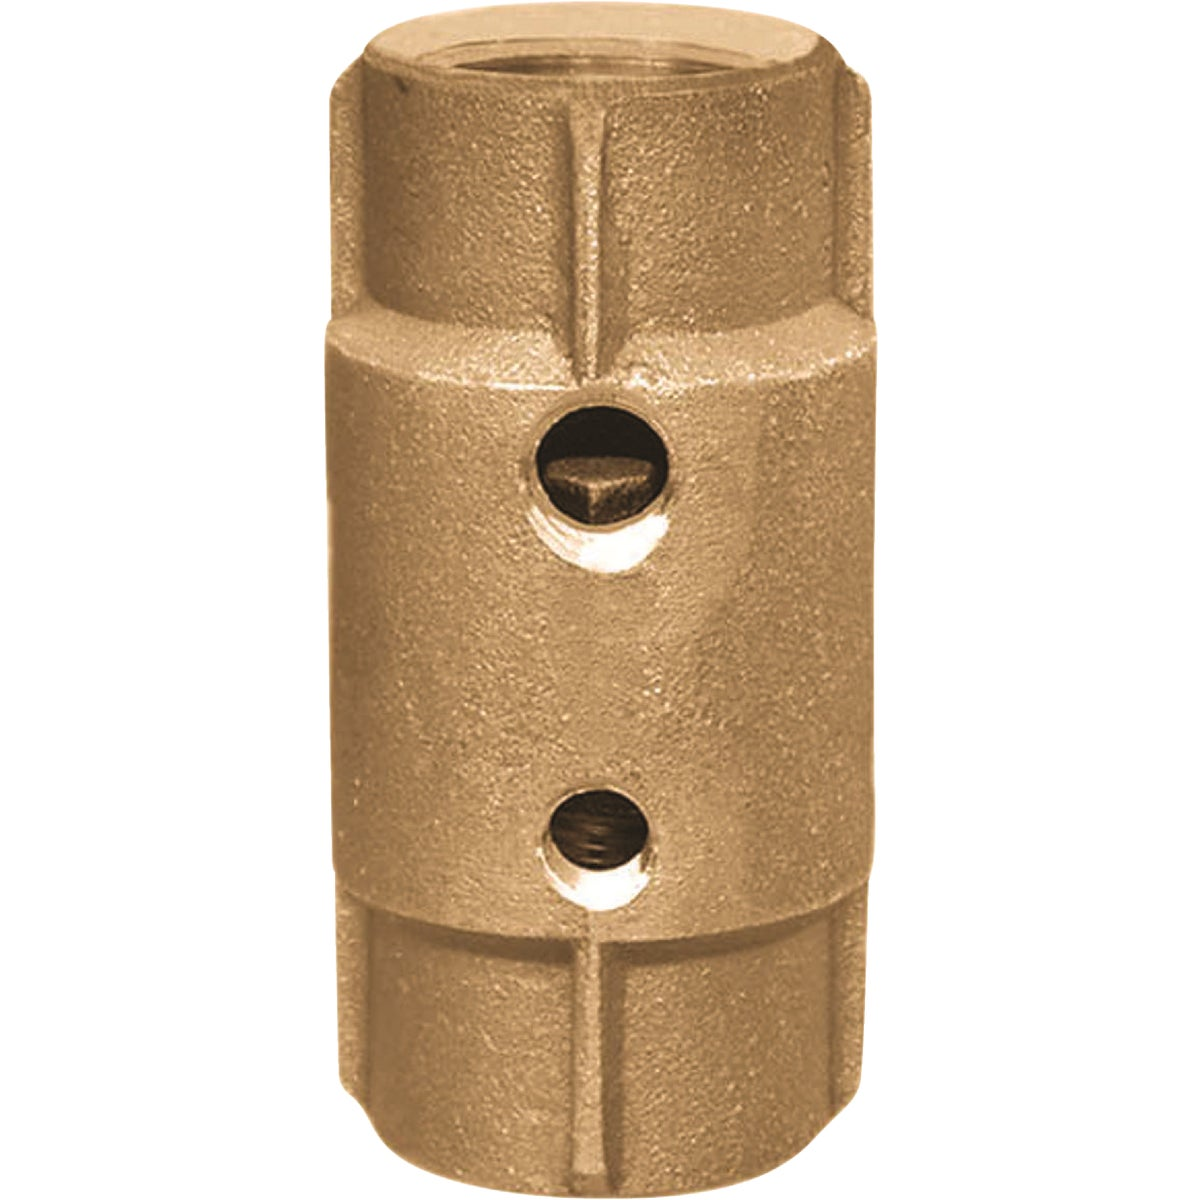 "1-1/4"" CHECK VALVE - 543SBCHECK by Simmons Mfg Co"